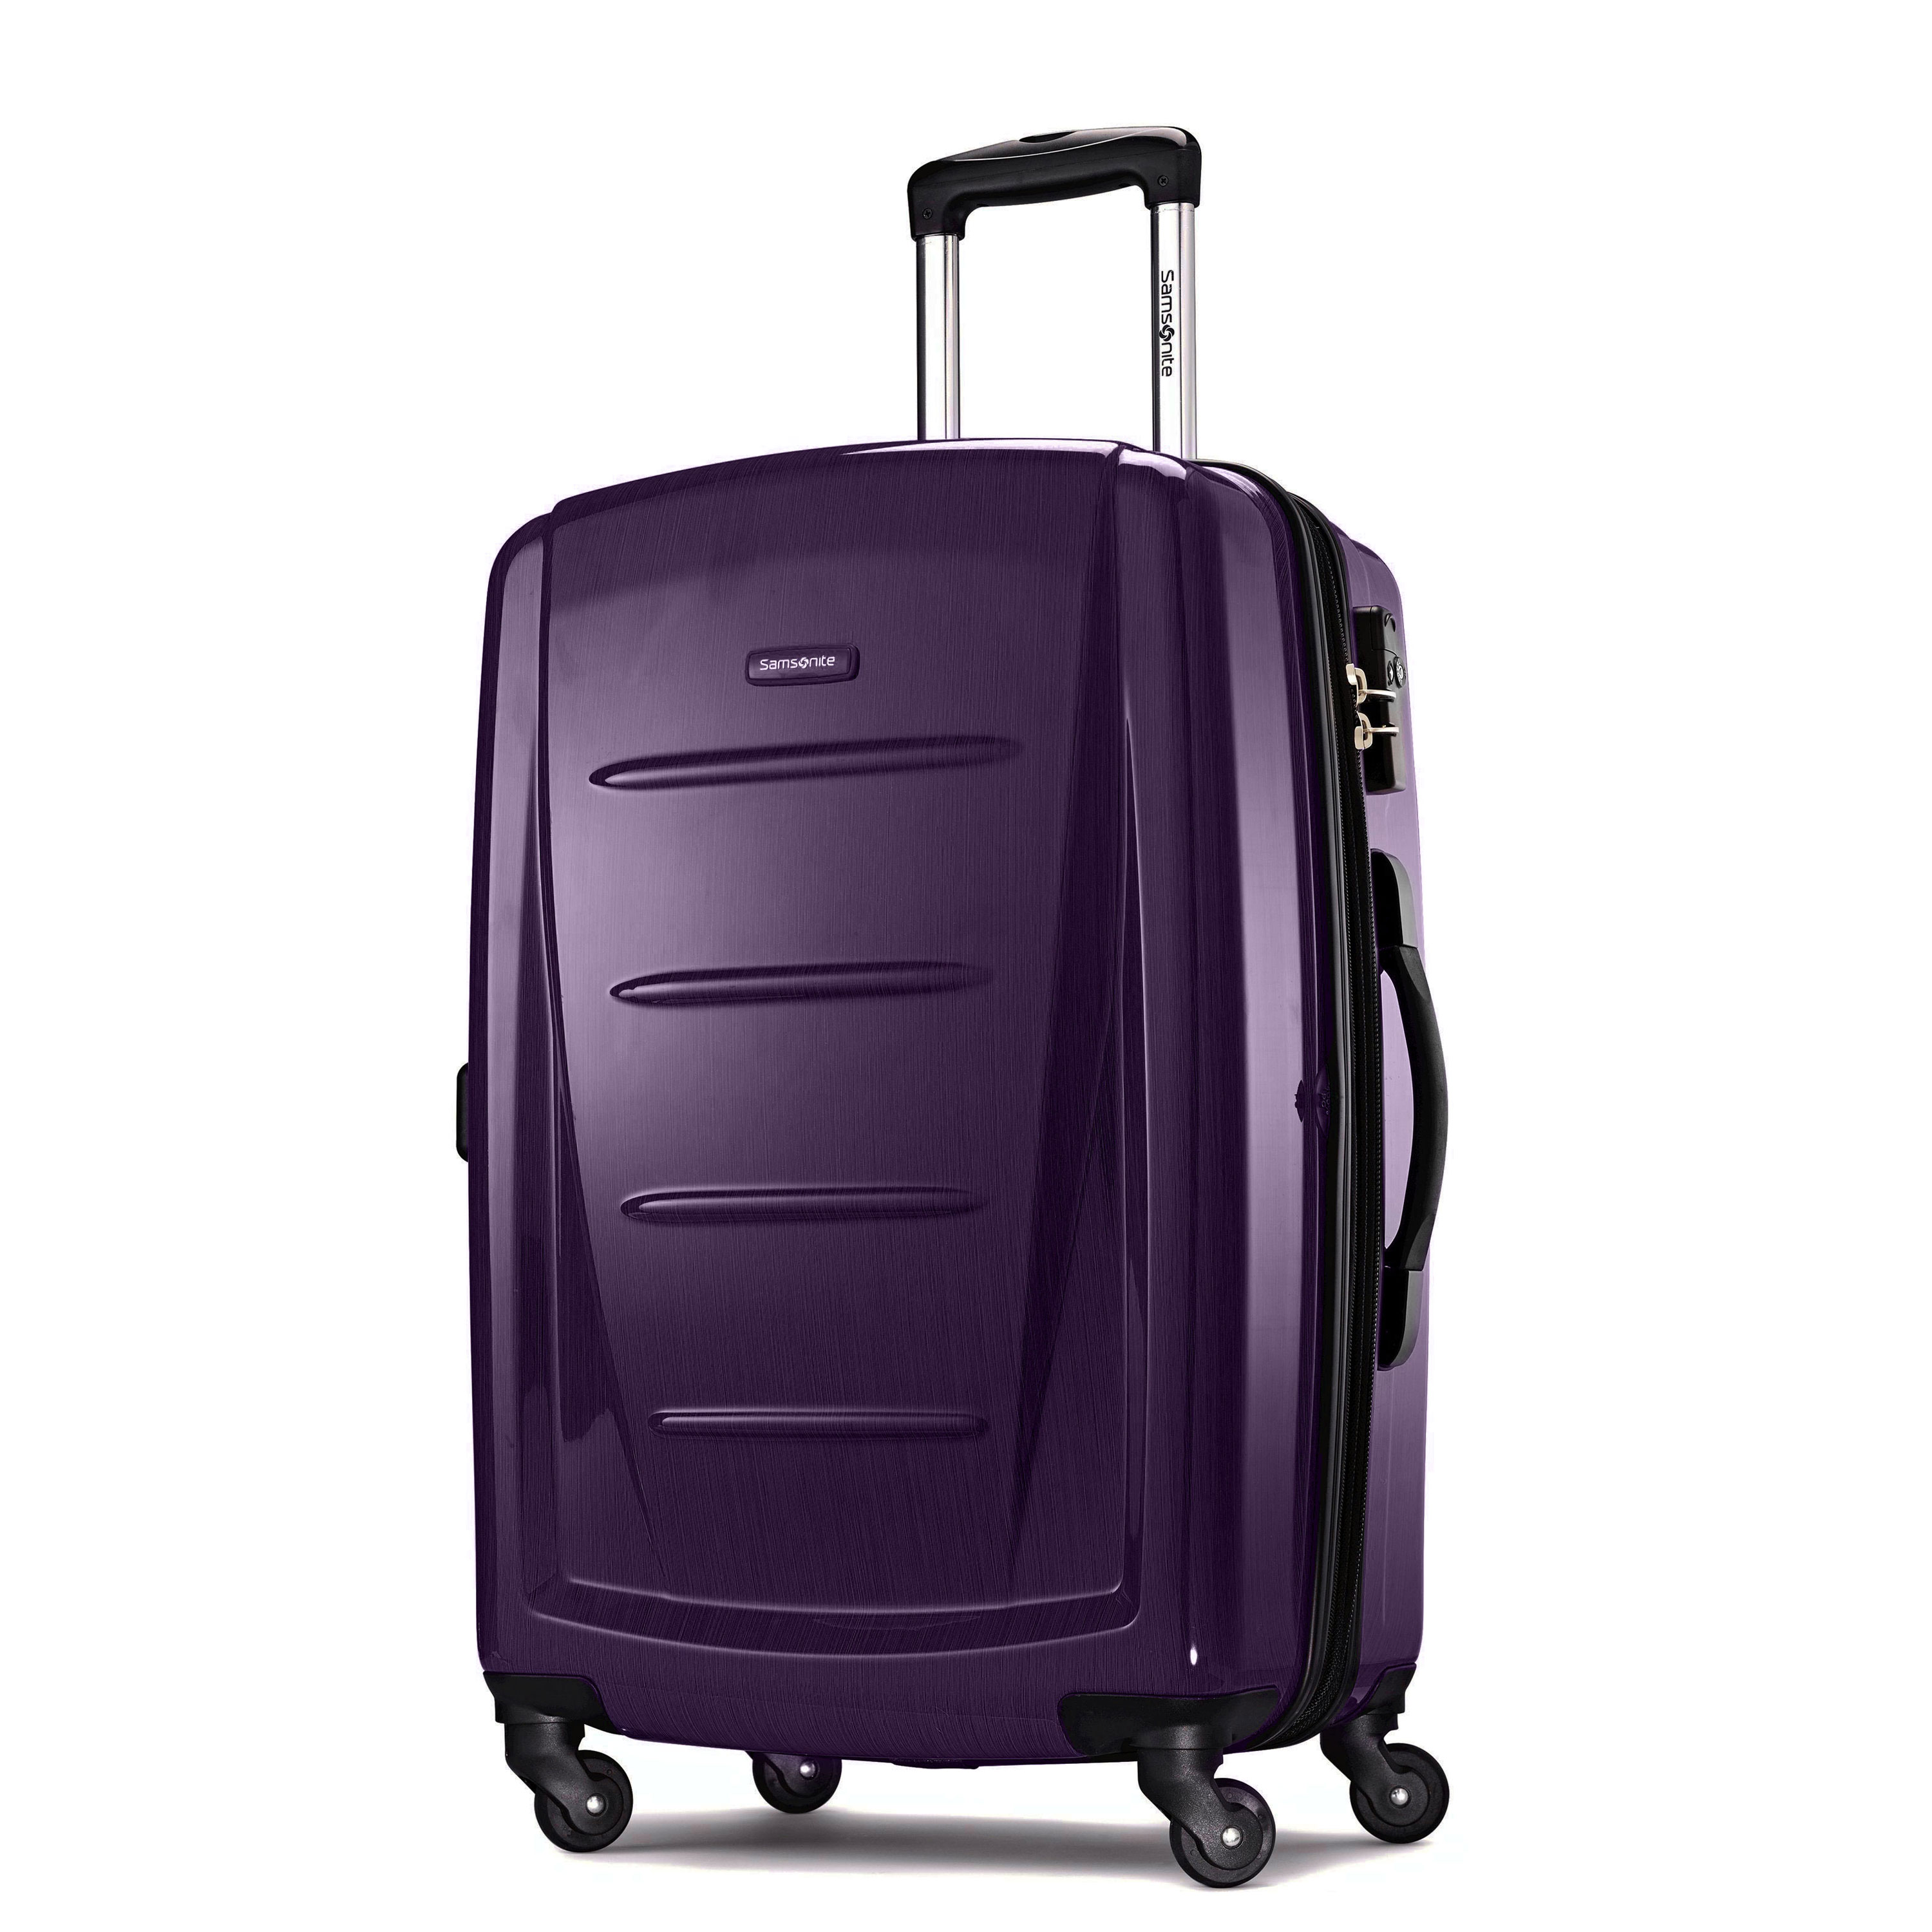 Samsonite-Winfield-2-Fashion-Spinner-Luggage thumbnail 41